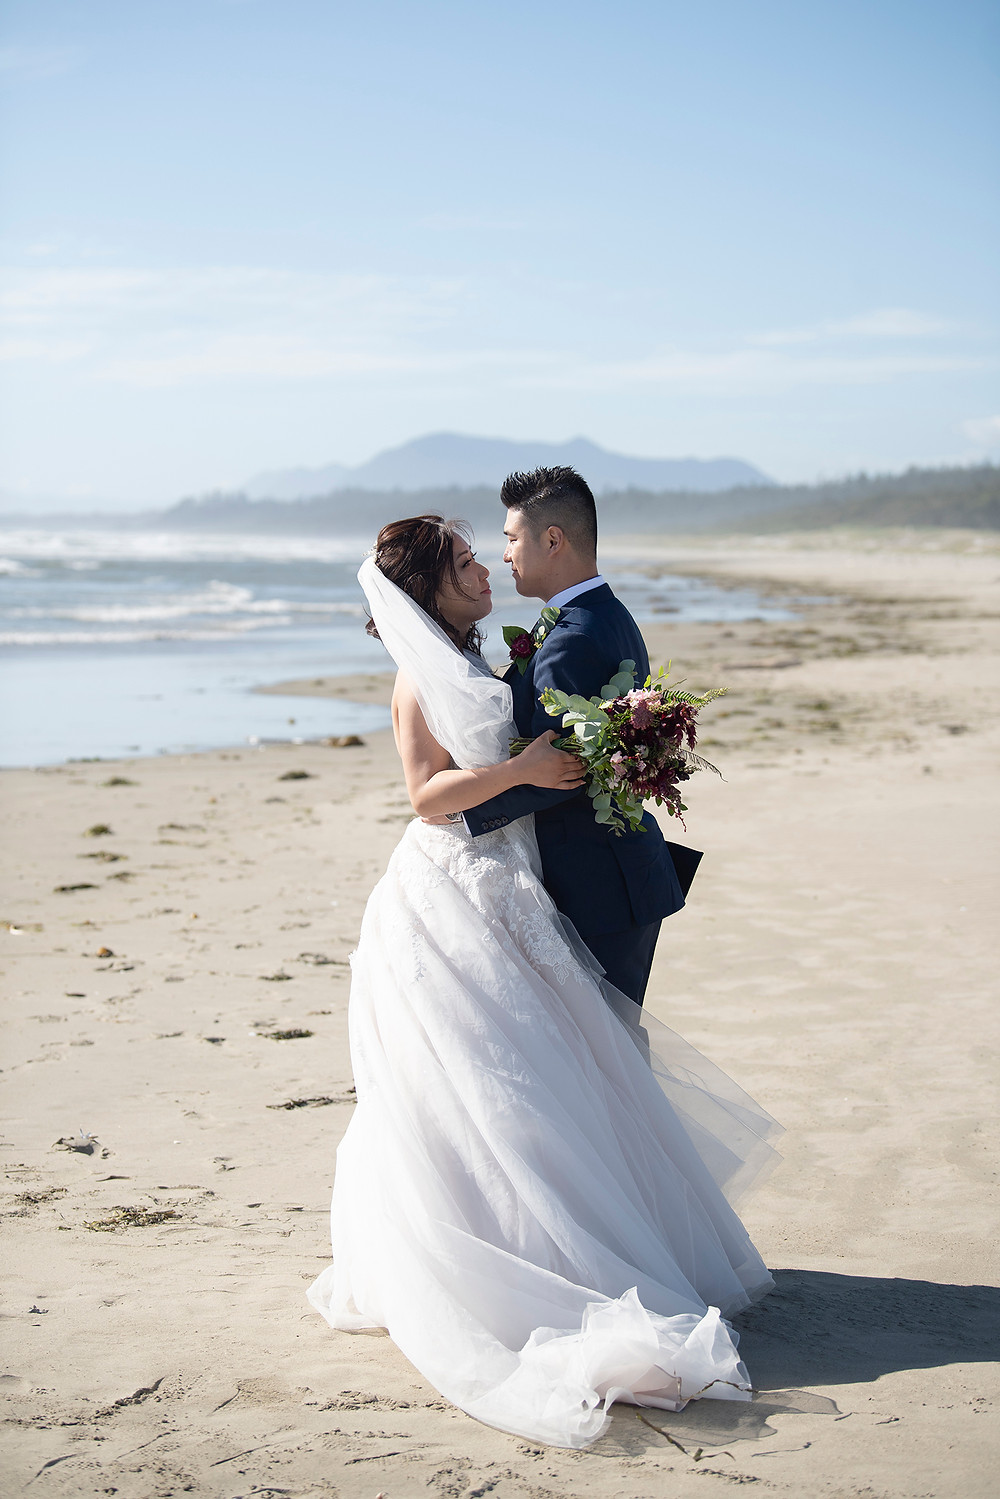 Bride and groom hold each other on the beach at their Ucluelet wedding at Black Rock Resort. Photographed by Ucluelet Photographer Kaitlyn Shea.